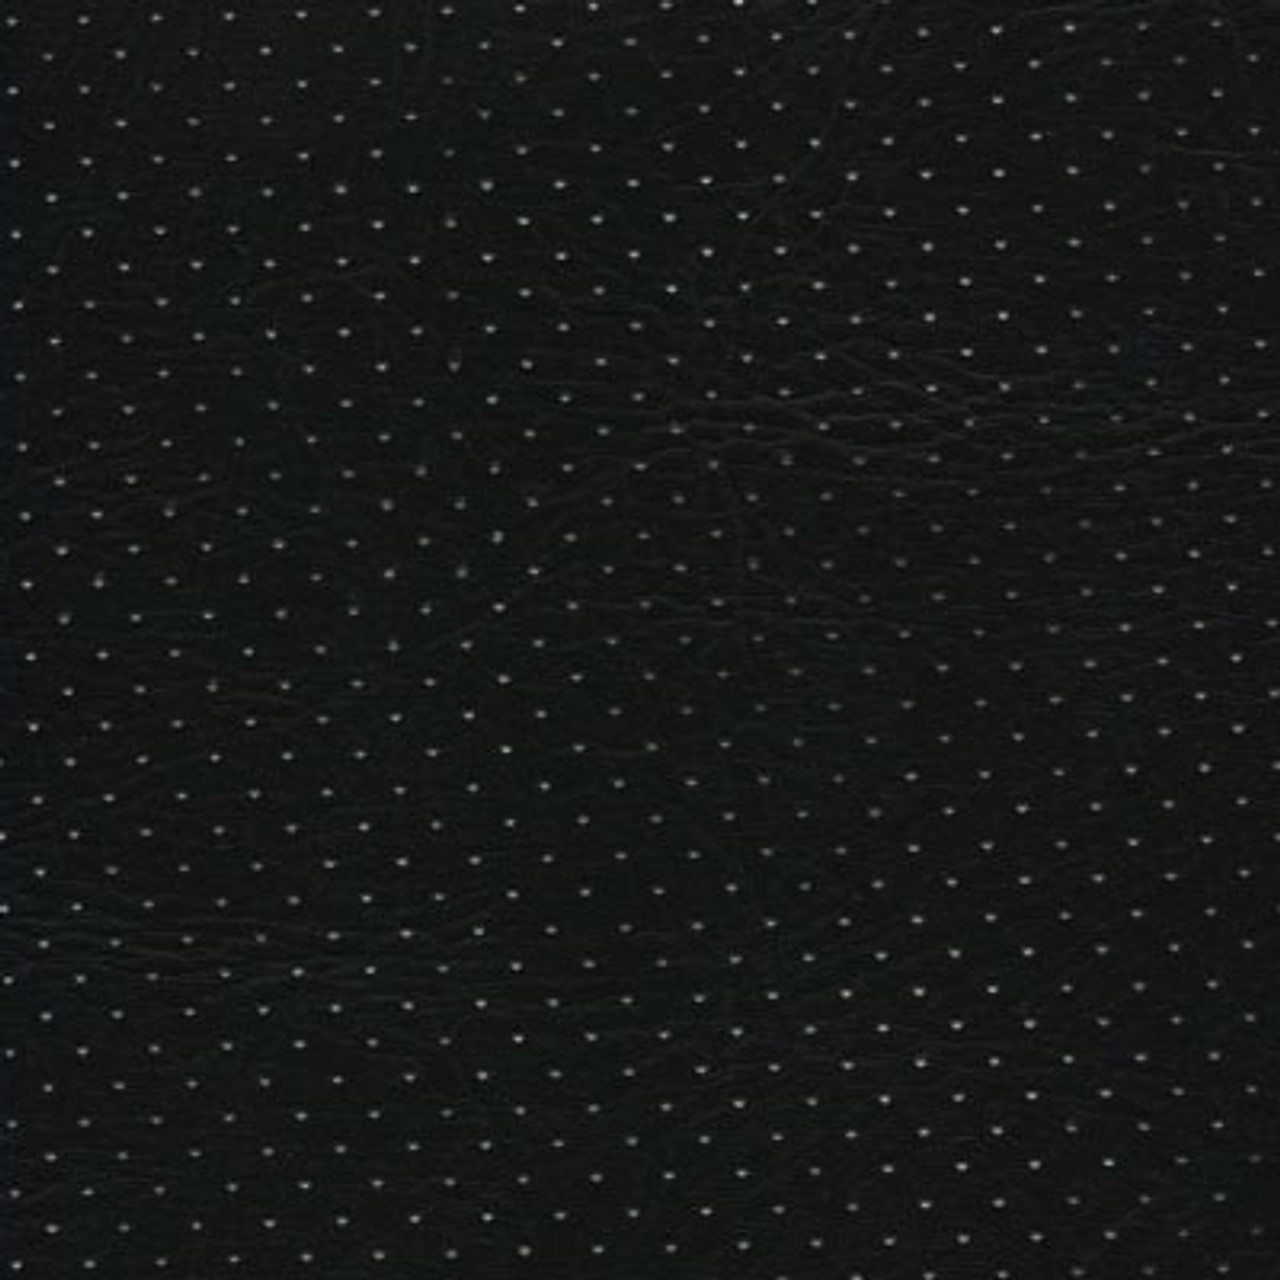 "Enduratex Vinyl Headliner CLASSIC PERFORATED 1000 Black 54"" - Sold by the CONTINUOUS YARD!"